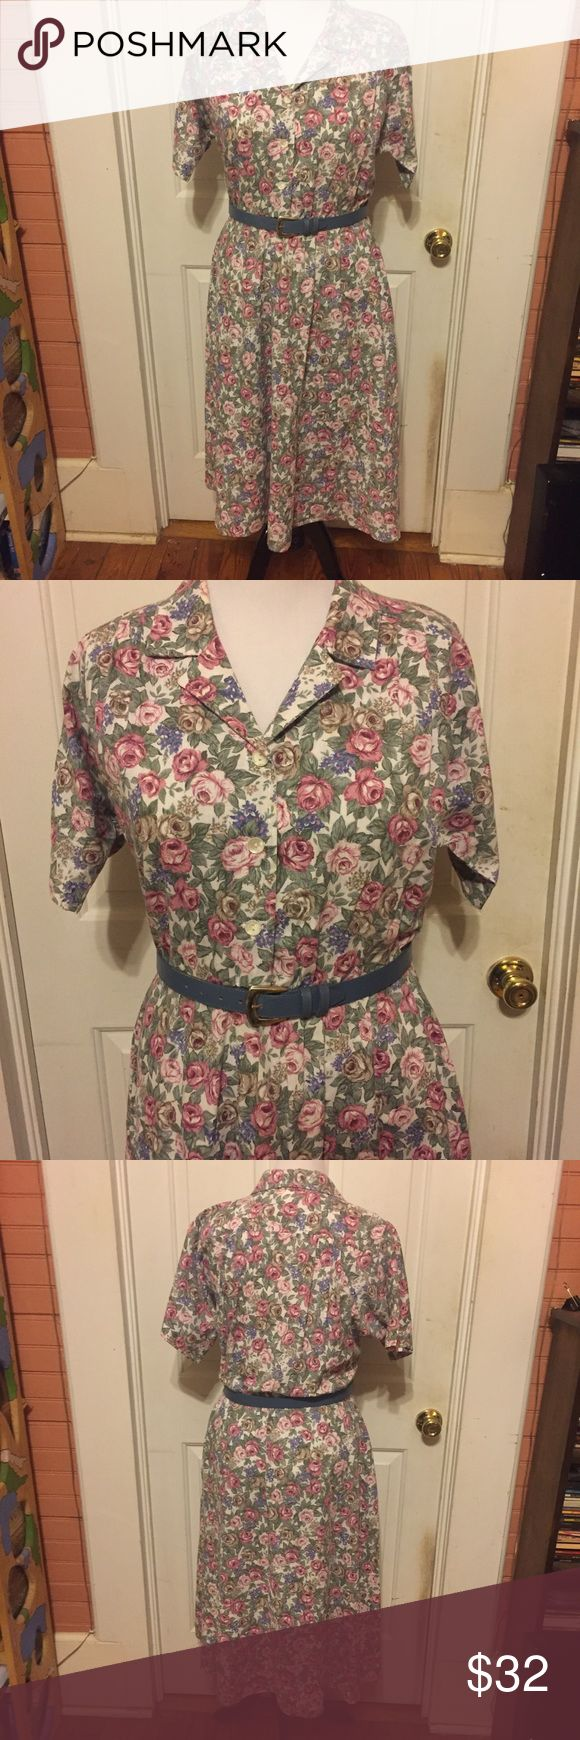 Pastel Floral Vintage Short Sleeve Dress Size XL Adorable Unique Pastel Floral Vintage Short Sleeve Dress WITH POCKETS! Made by Stuart Alan. Most likely 80's. The tag has faded, but it fits my 12-14 model like a champ so I would size it as a 12/14 or XL. Let me know if you need measurements. The waist is elastic. Could be paired with so many cute belts. Super comfy material most likely Cotton. Pretty detailing on the bust as well. See comments for more info. Vintage Dresses Maxi